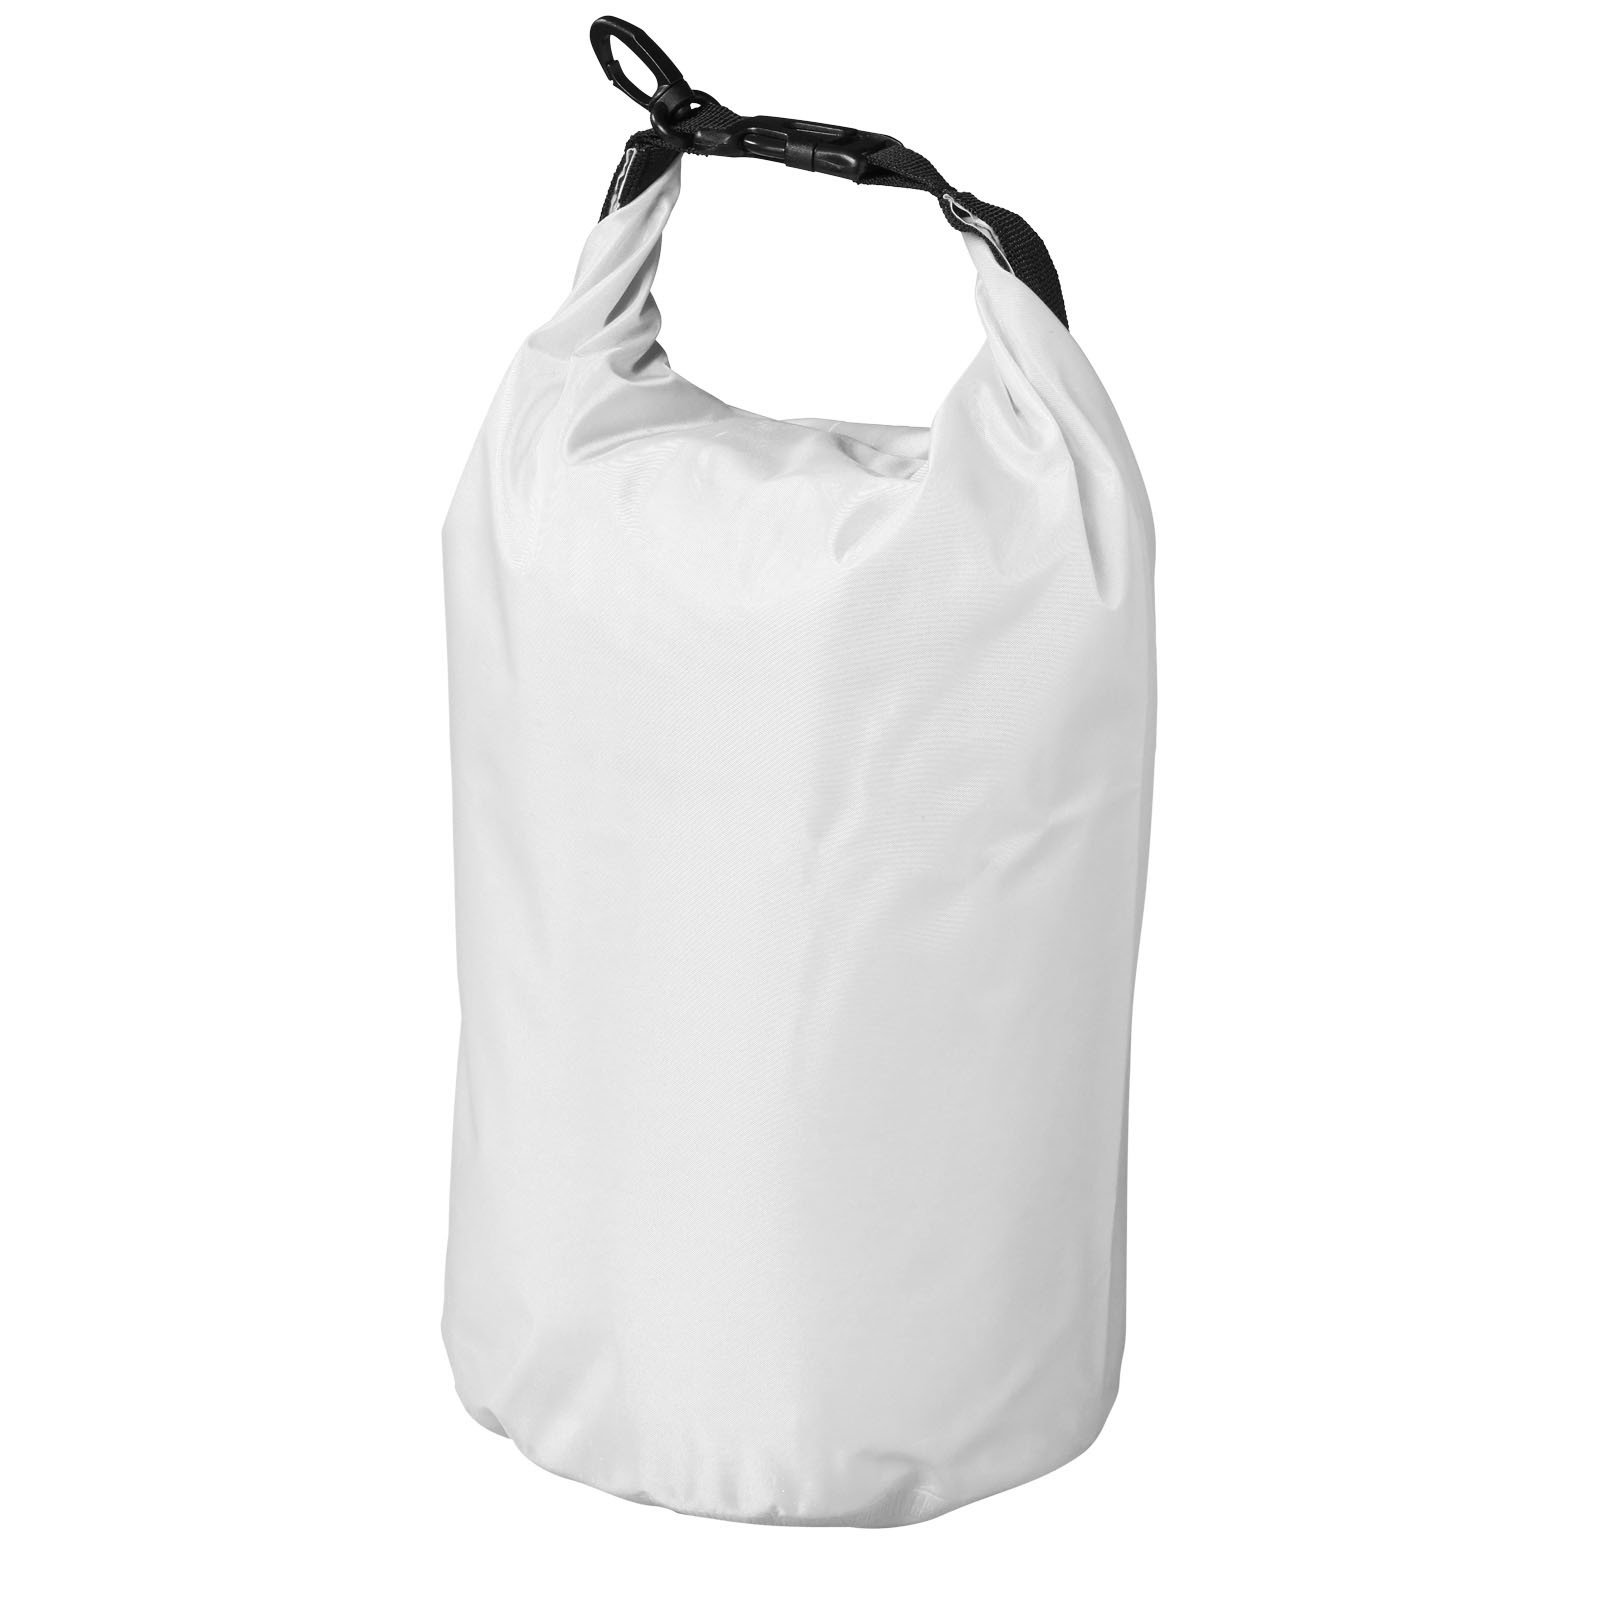 Camper 10 litre waterproof bag - White